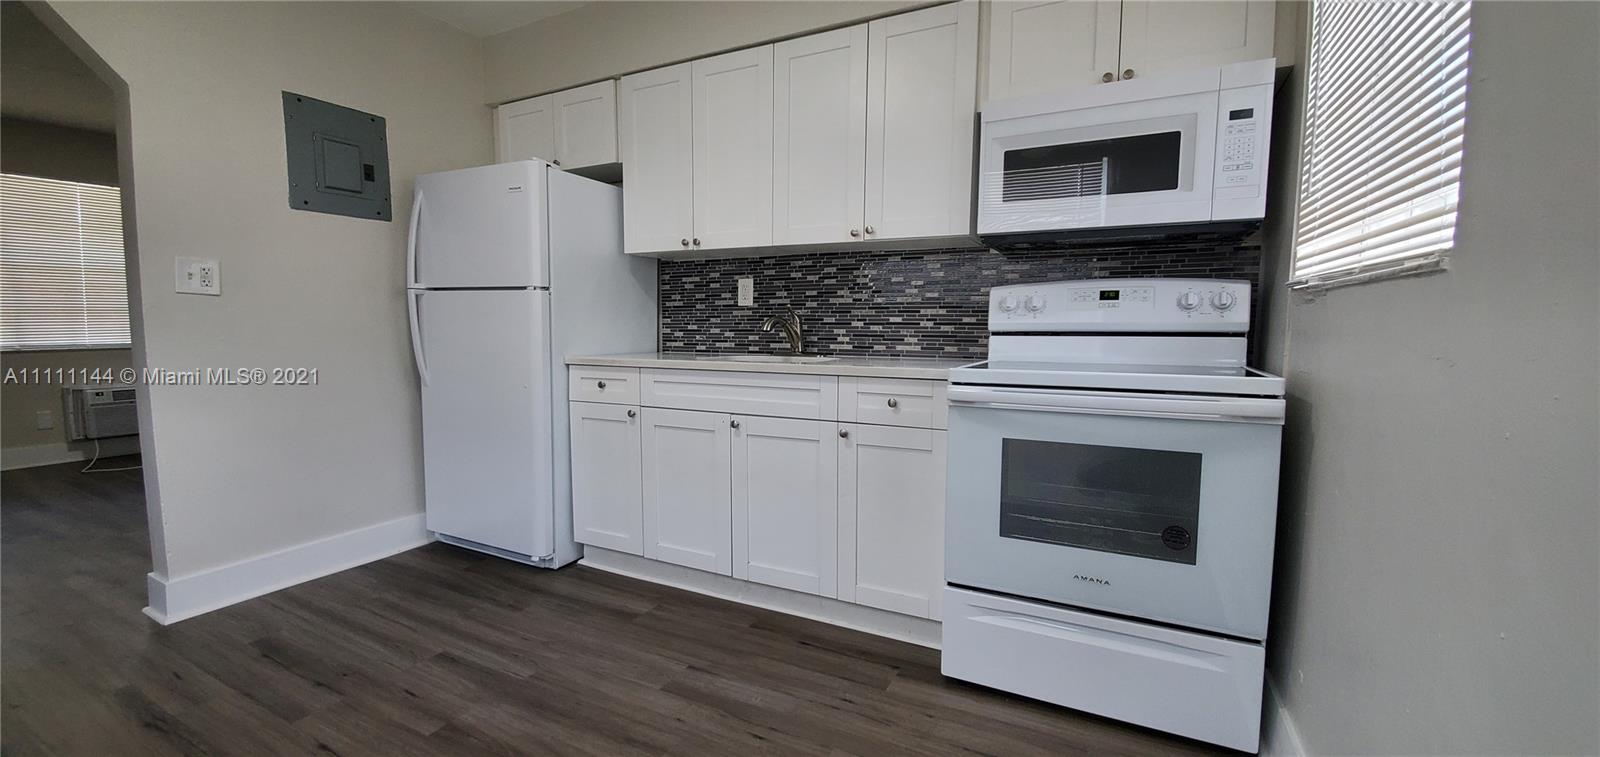 822 NW 7th Ter #8 For Sale A11111144, FL